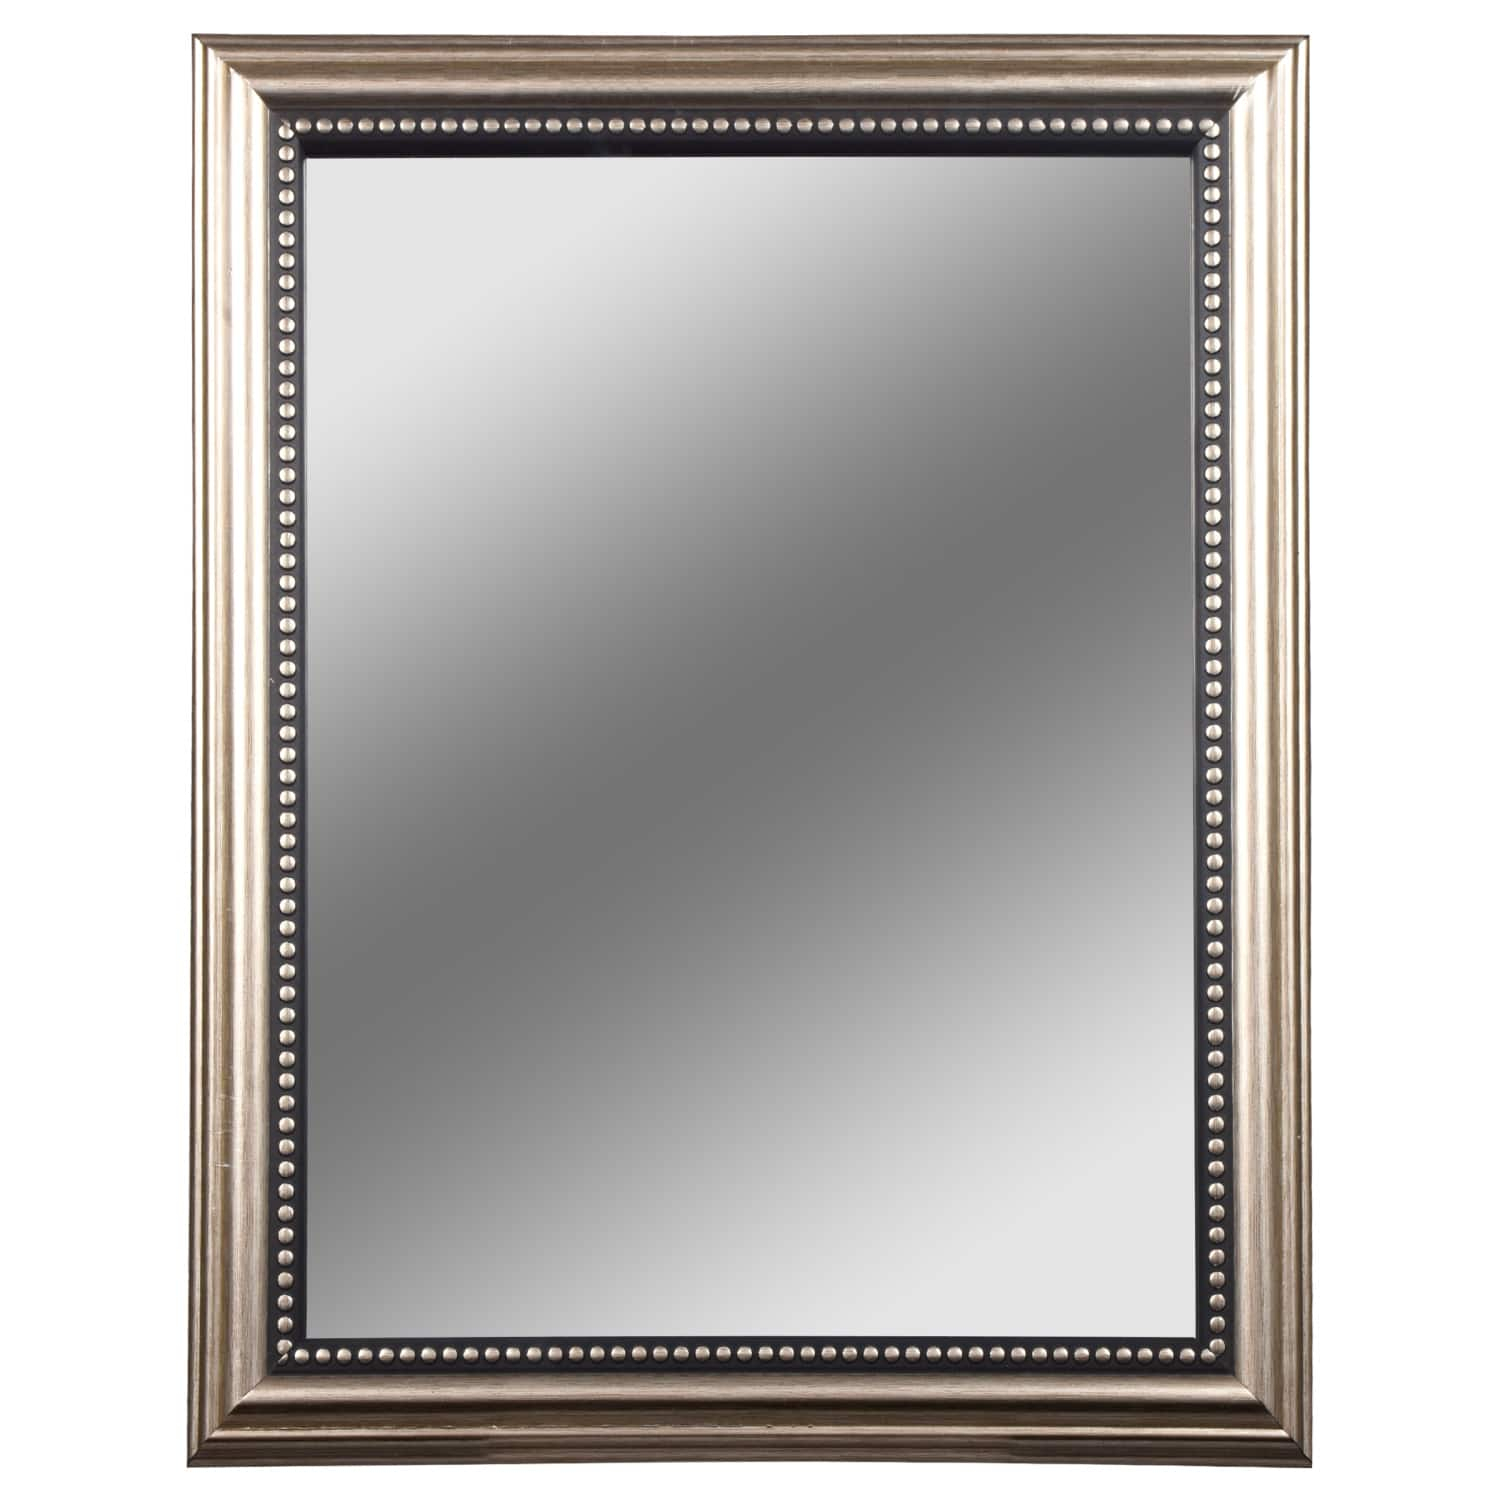 Dollartree | Bulk Accent Mirrors With Silver Plastic In Silver Frame Accent Mirrors (View 4 of 20)